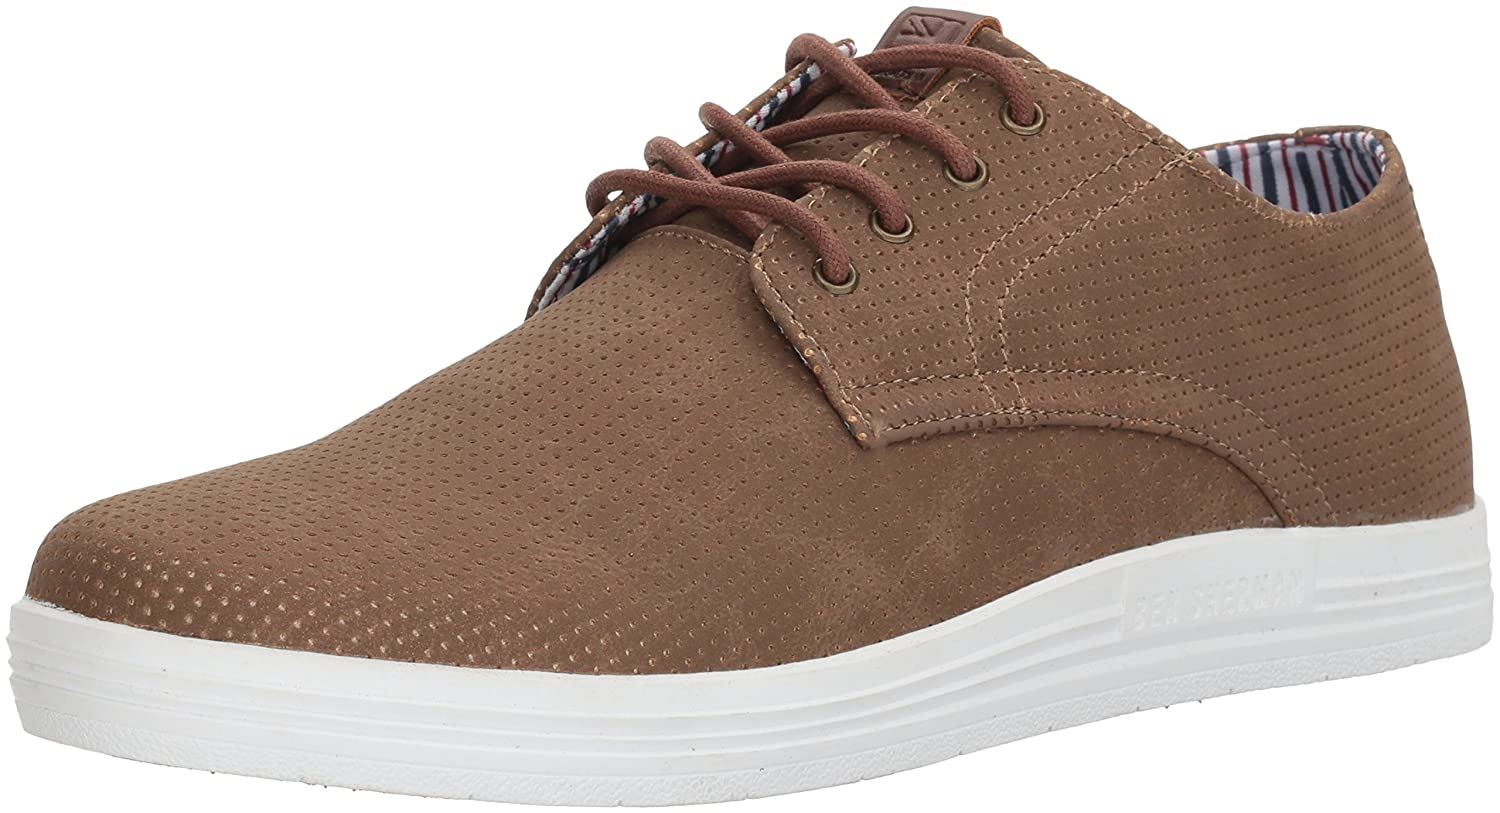 Ben Sherman Men's Payton Oxford BN7F00111-B14